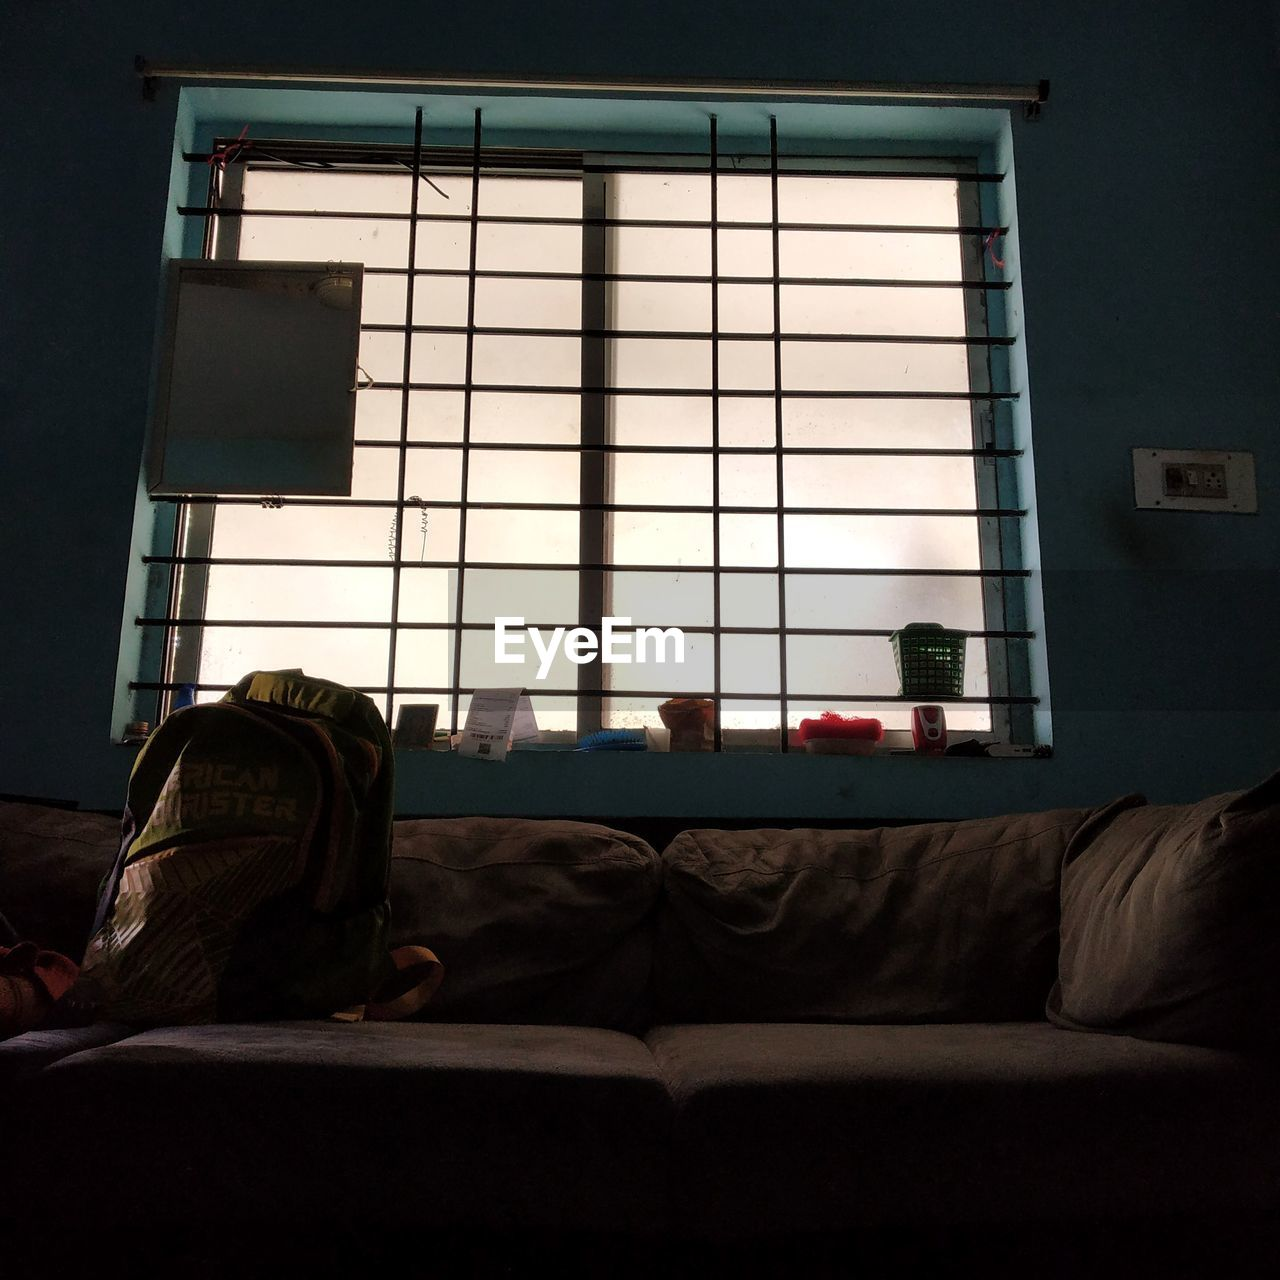 window, furniture, indoors, domestic room, sofa, home interior, no people, glass - material, day, pillow, architecture, relaxation, sunlight, living room, built structure, building, bed, absence, house